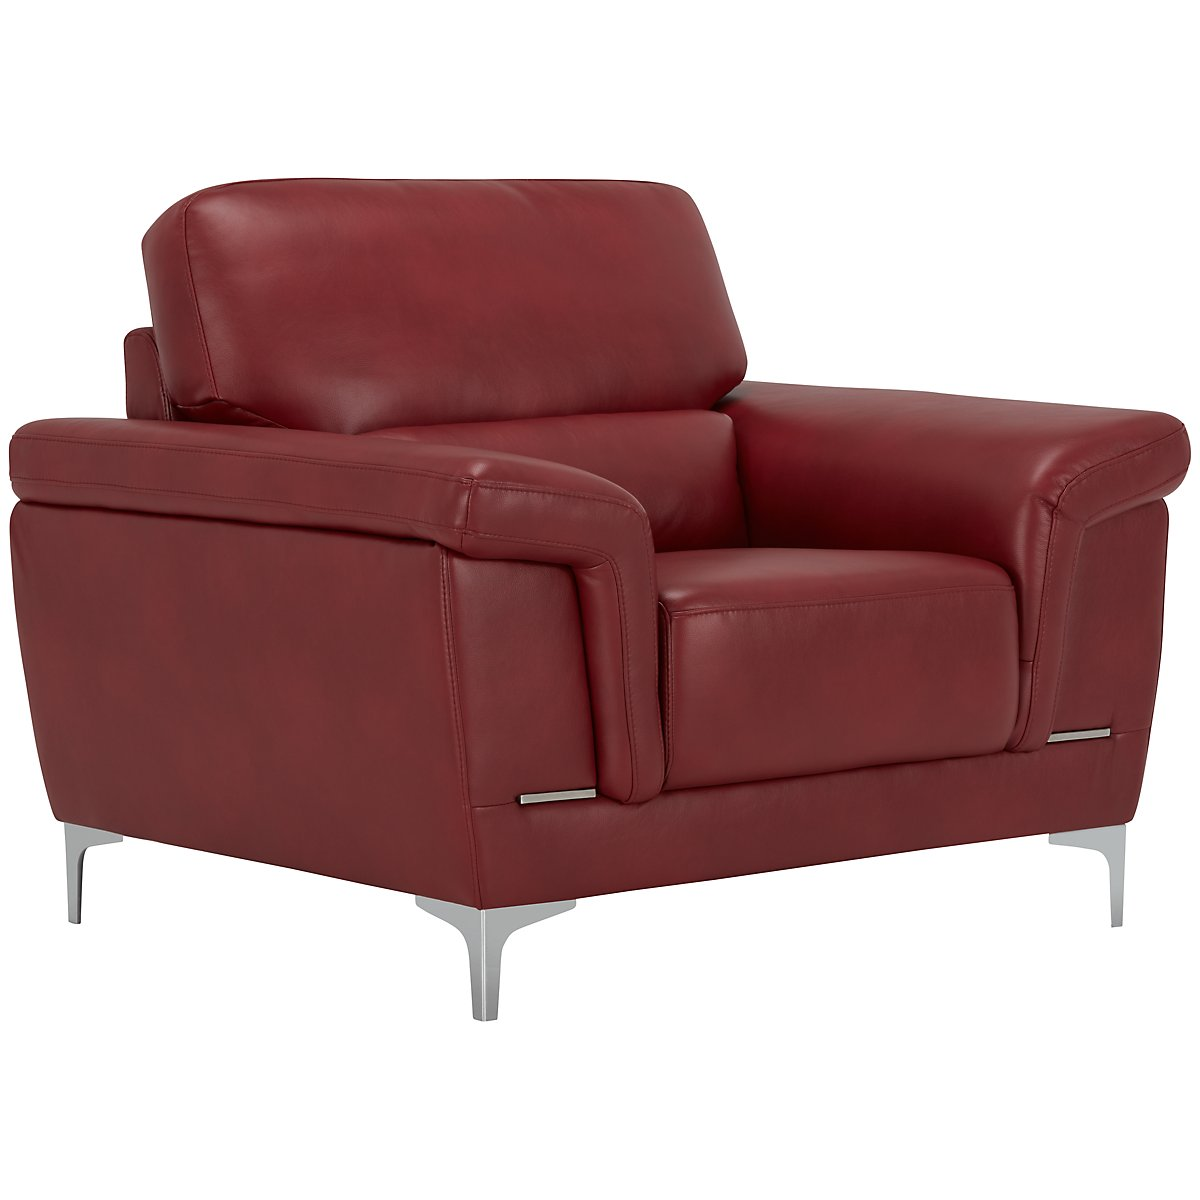 Enzo Red Microfiber Chair